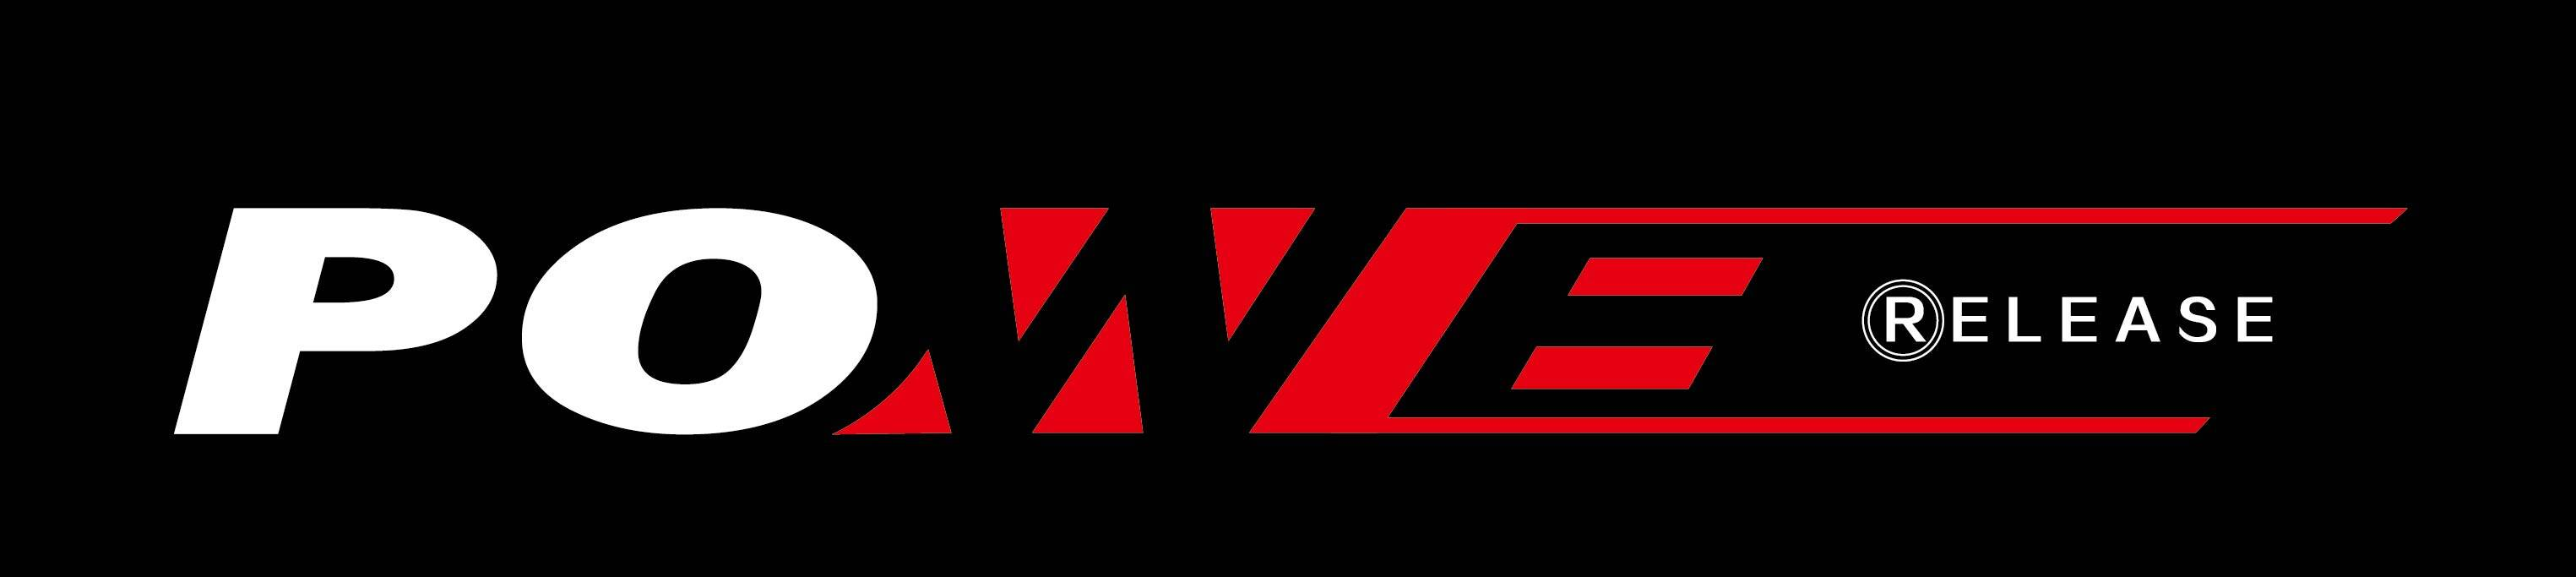 PoweRelease one retailer for Track bike wheels,fixie bike wheels,road bike wheels,carbon road rims,mtb rims,bmx rims.